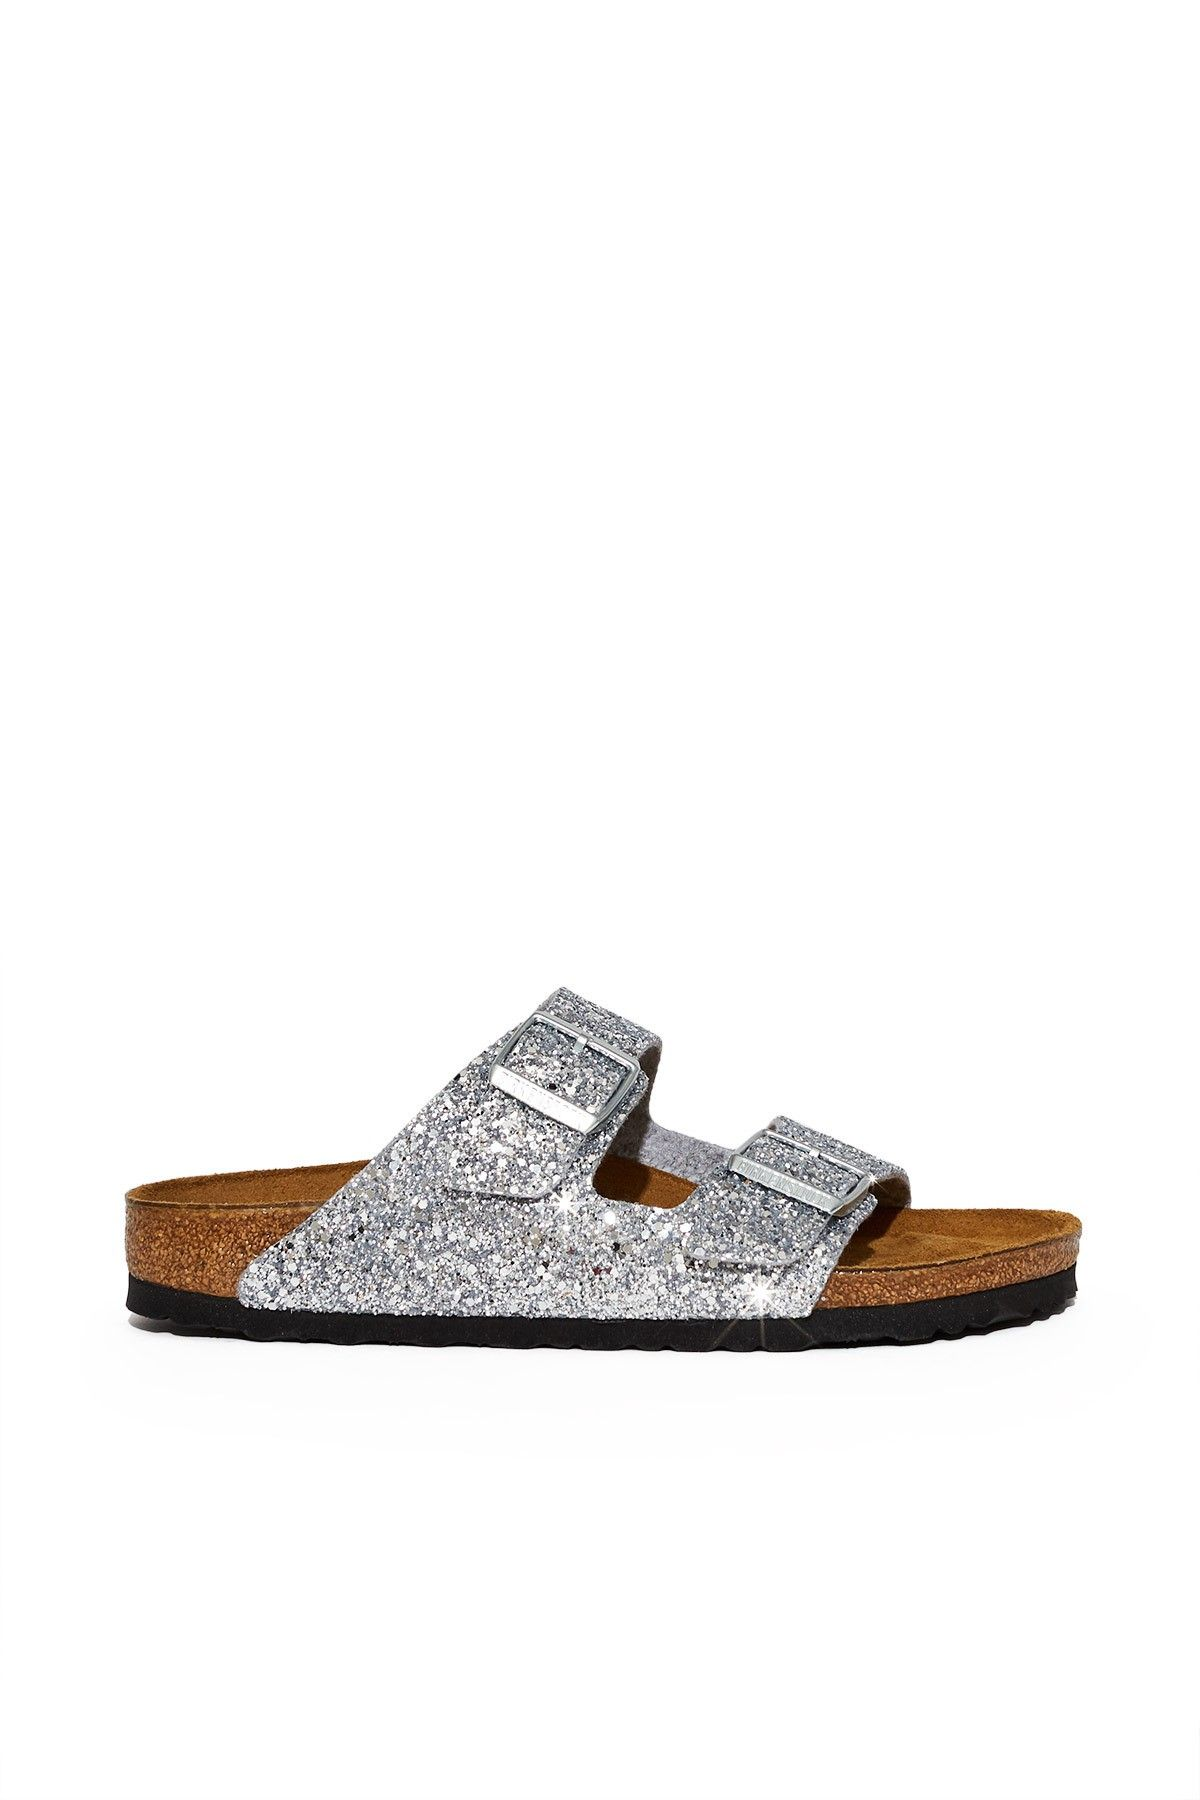 436965417901 Opening Ceremony x Birkenstock Glitter Collection